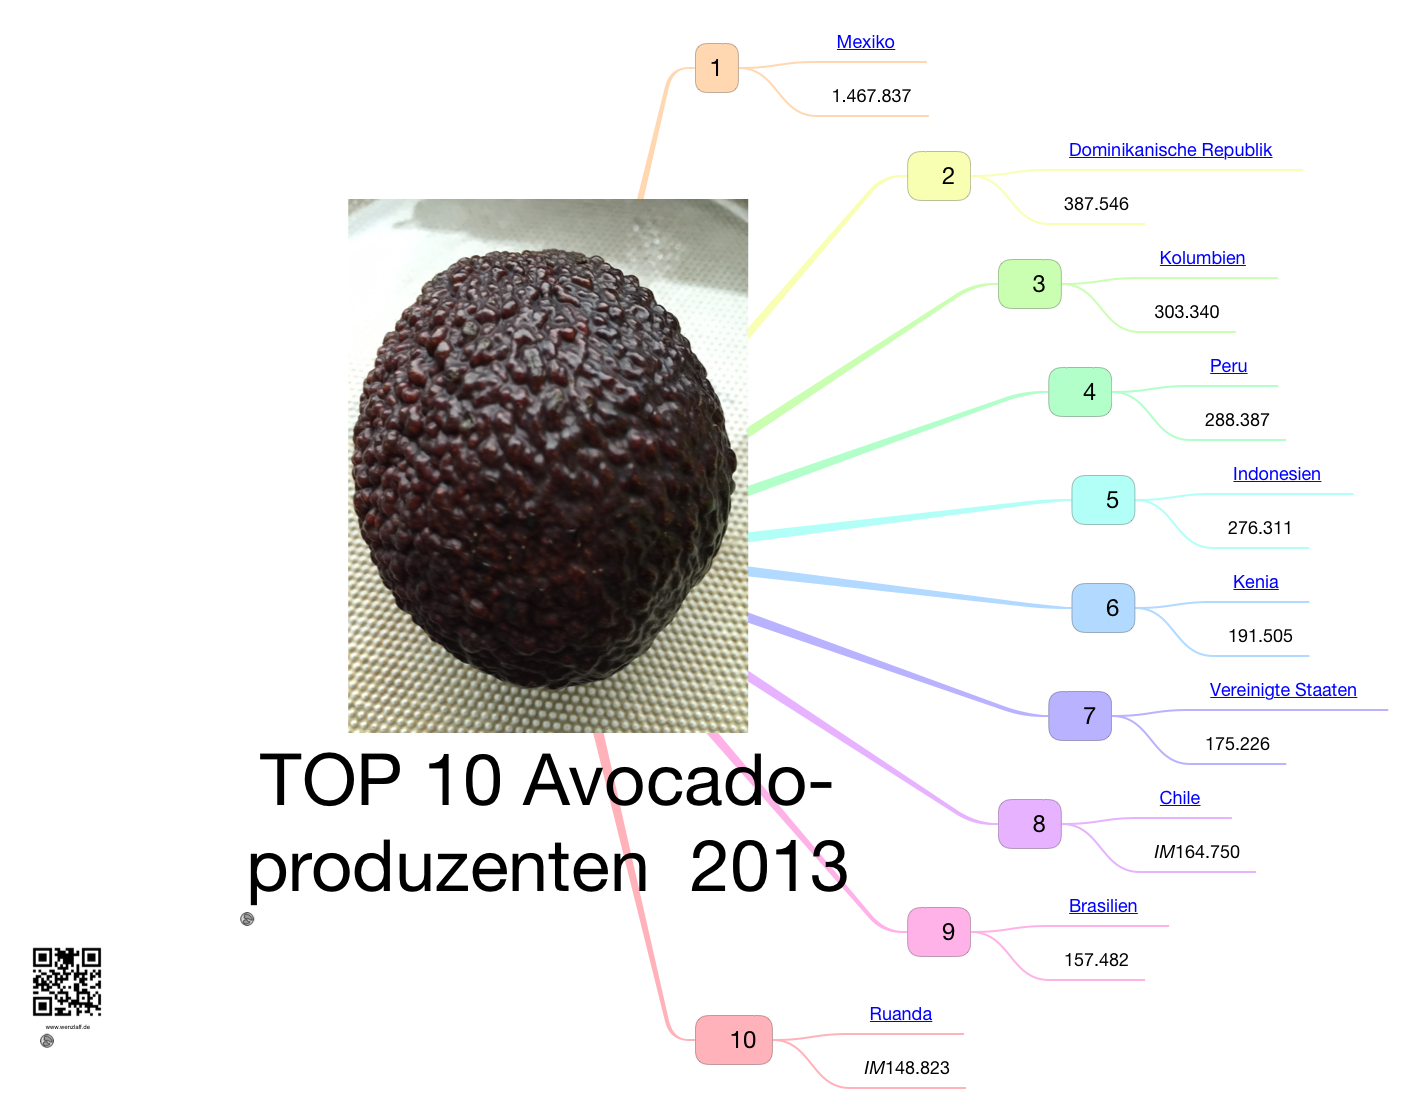 top-10-avocadoproduzent